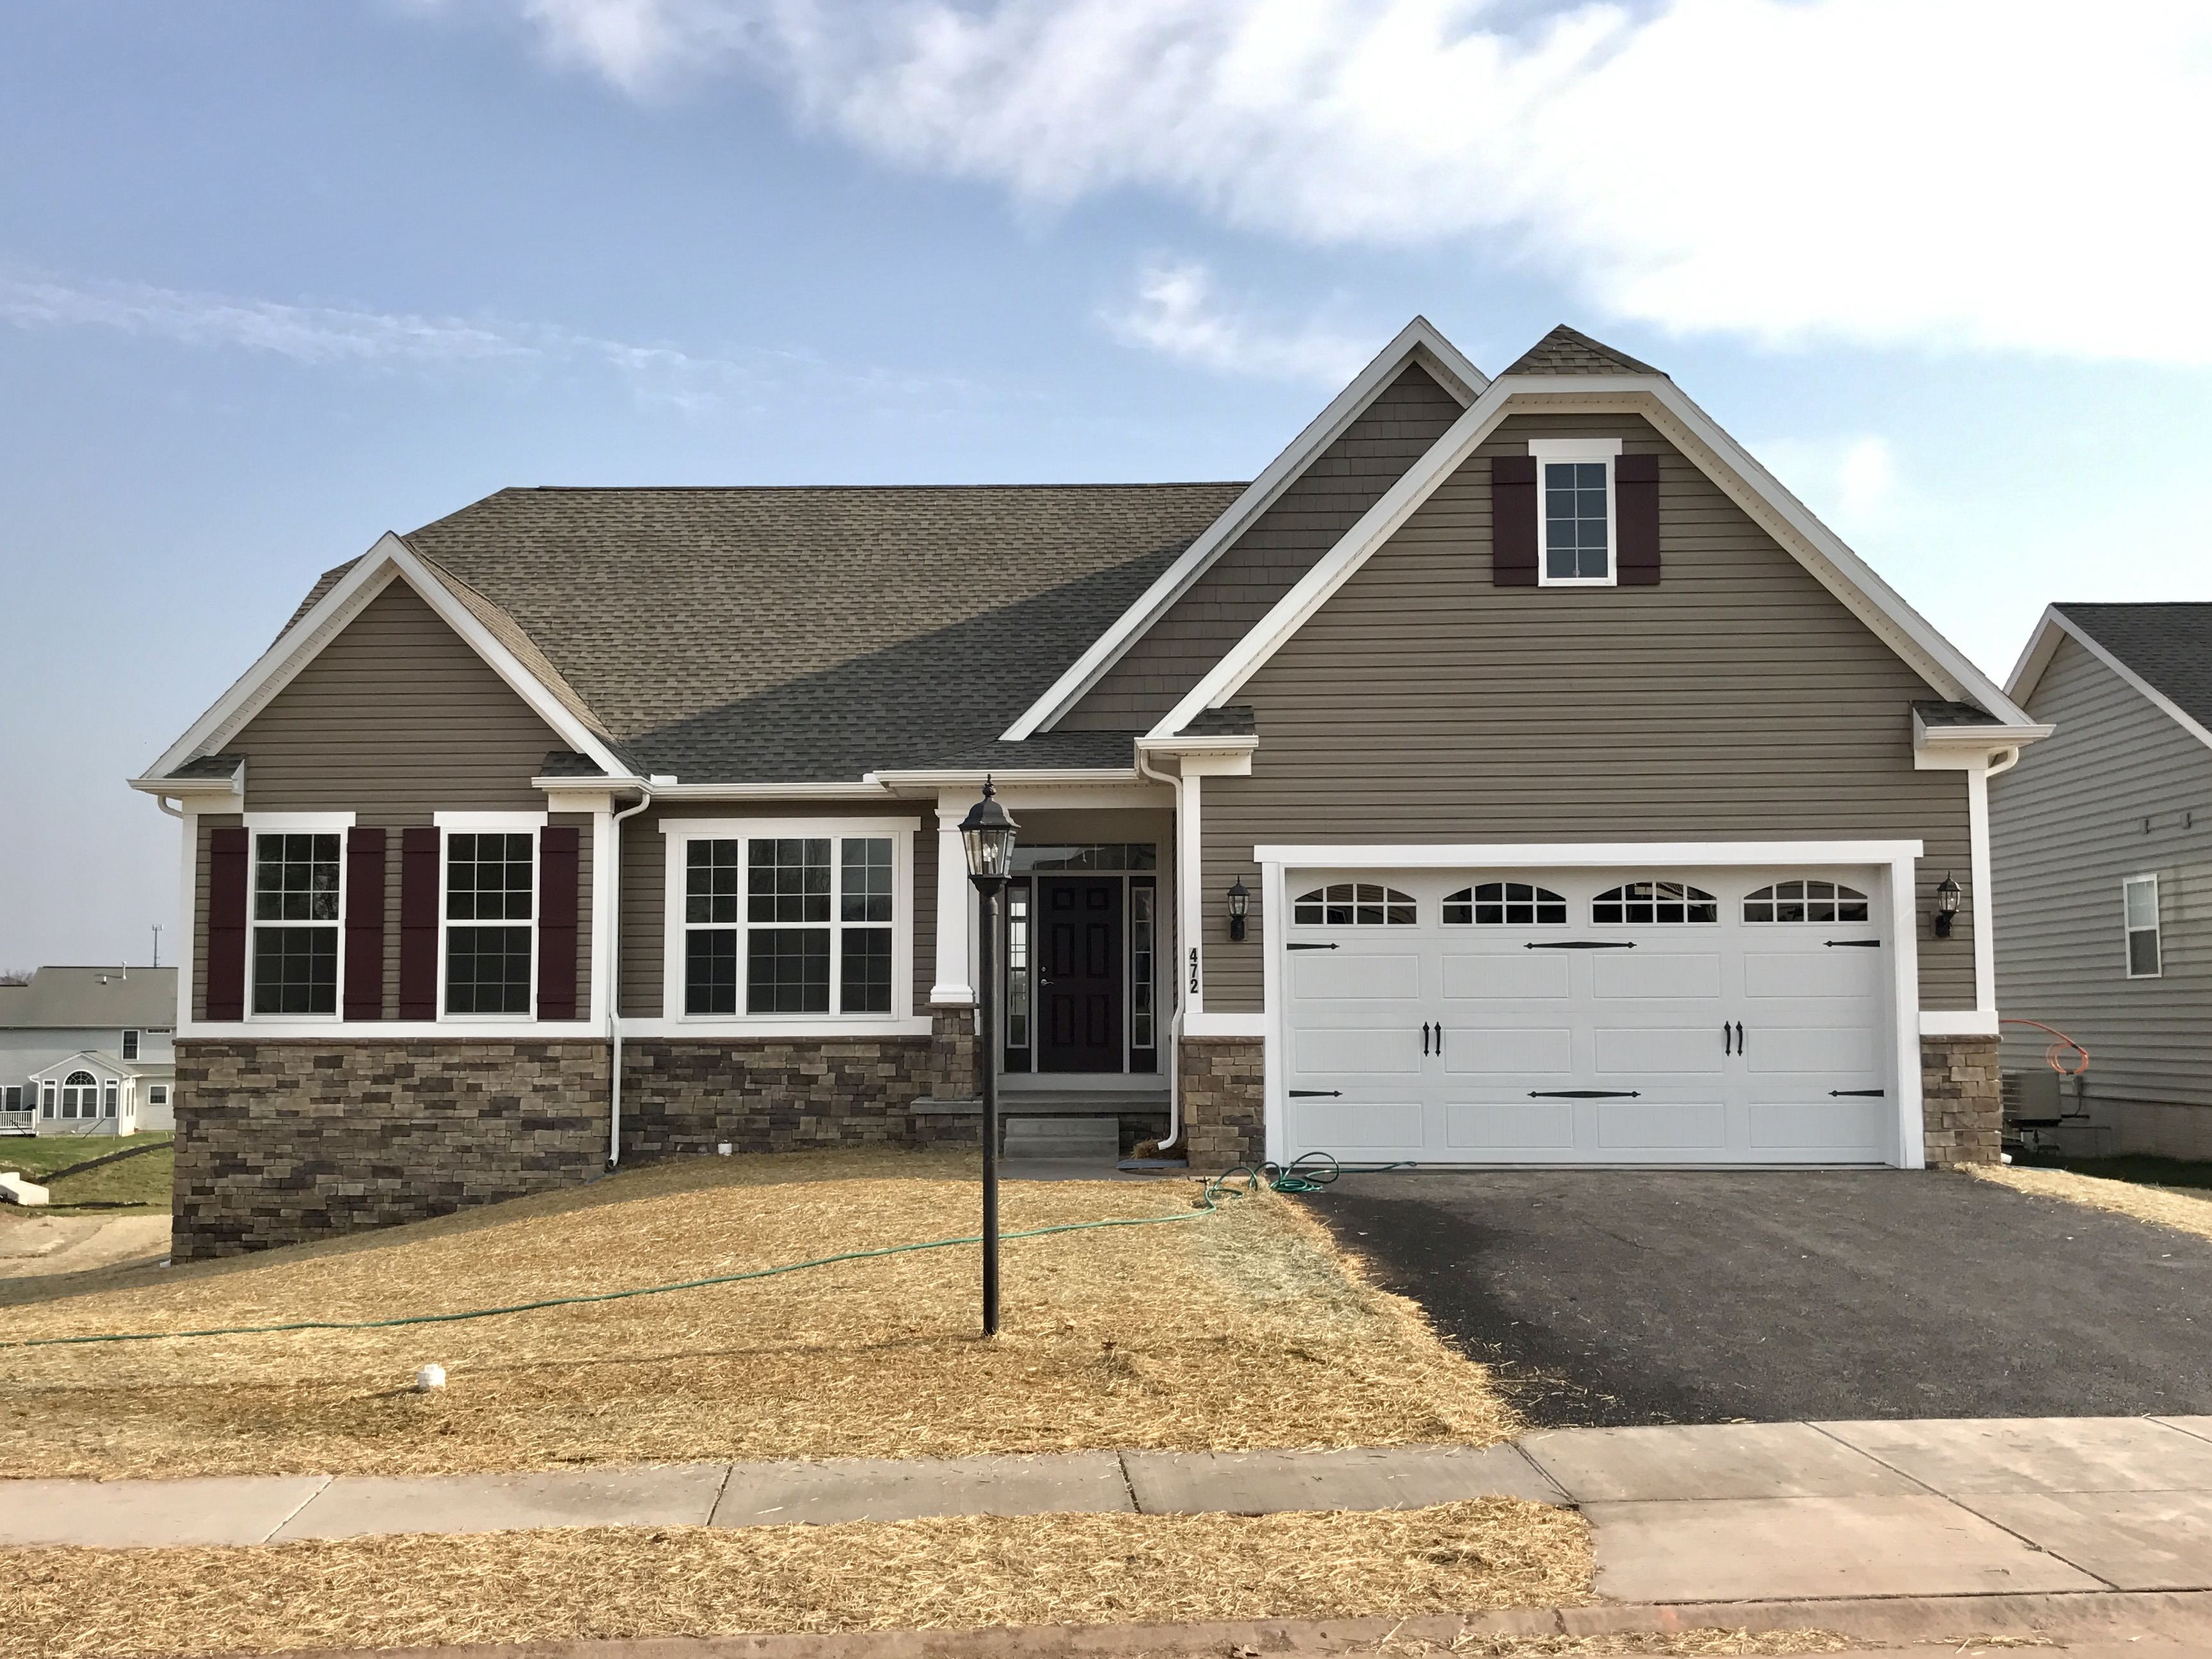 move in ready homes in abbottstown pa hanover pa gettysburg pa littlestown pa new oxford pa. Black Bedroom Furniture Sets. Home Design Ideas